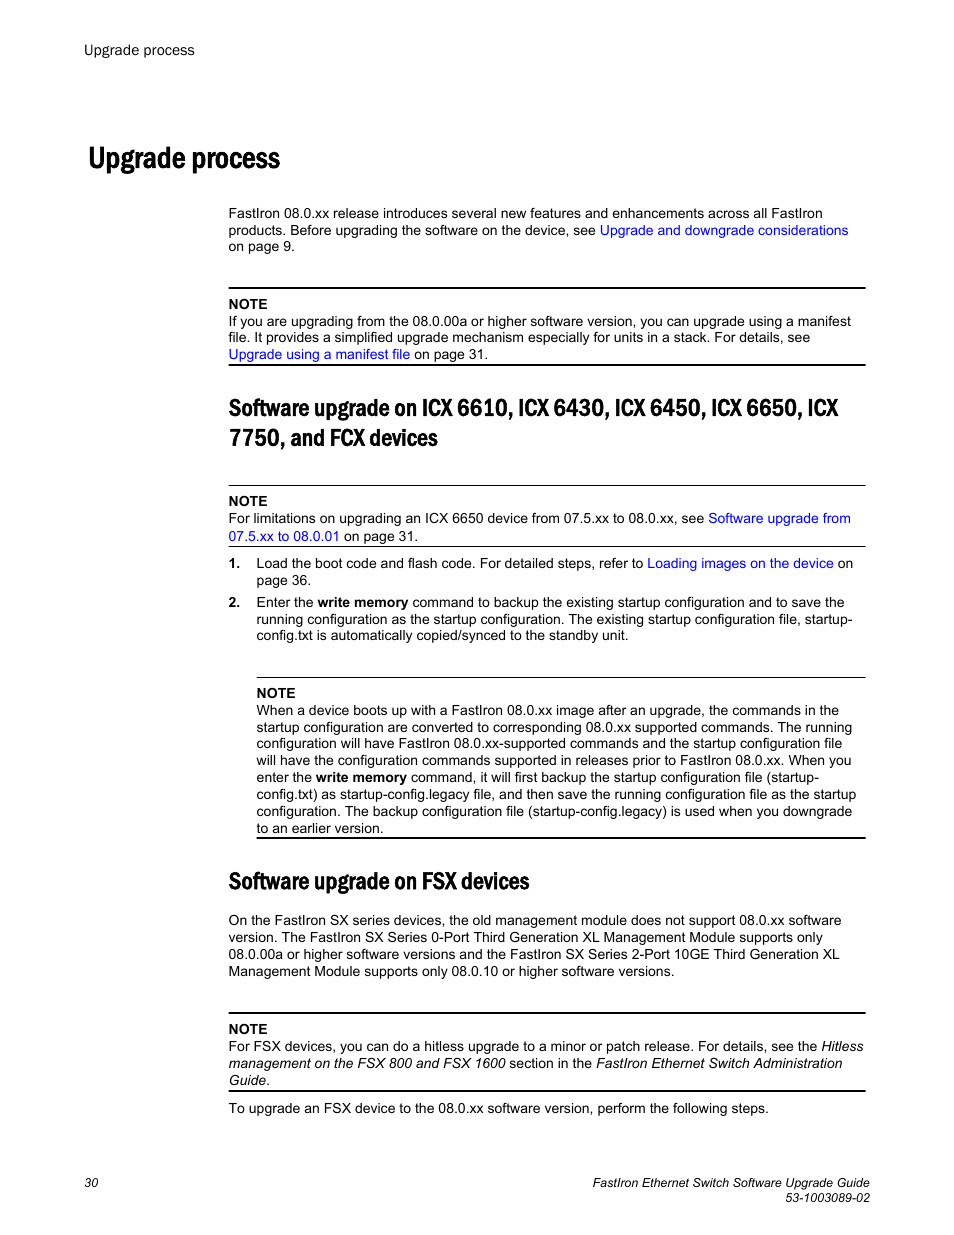 Upgrade process, Software upgrade on fsx devices, Icx 7750, and fcx